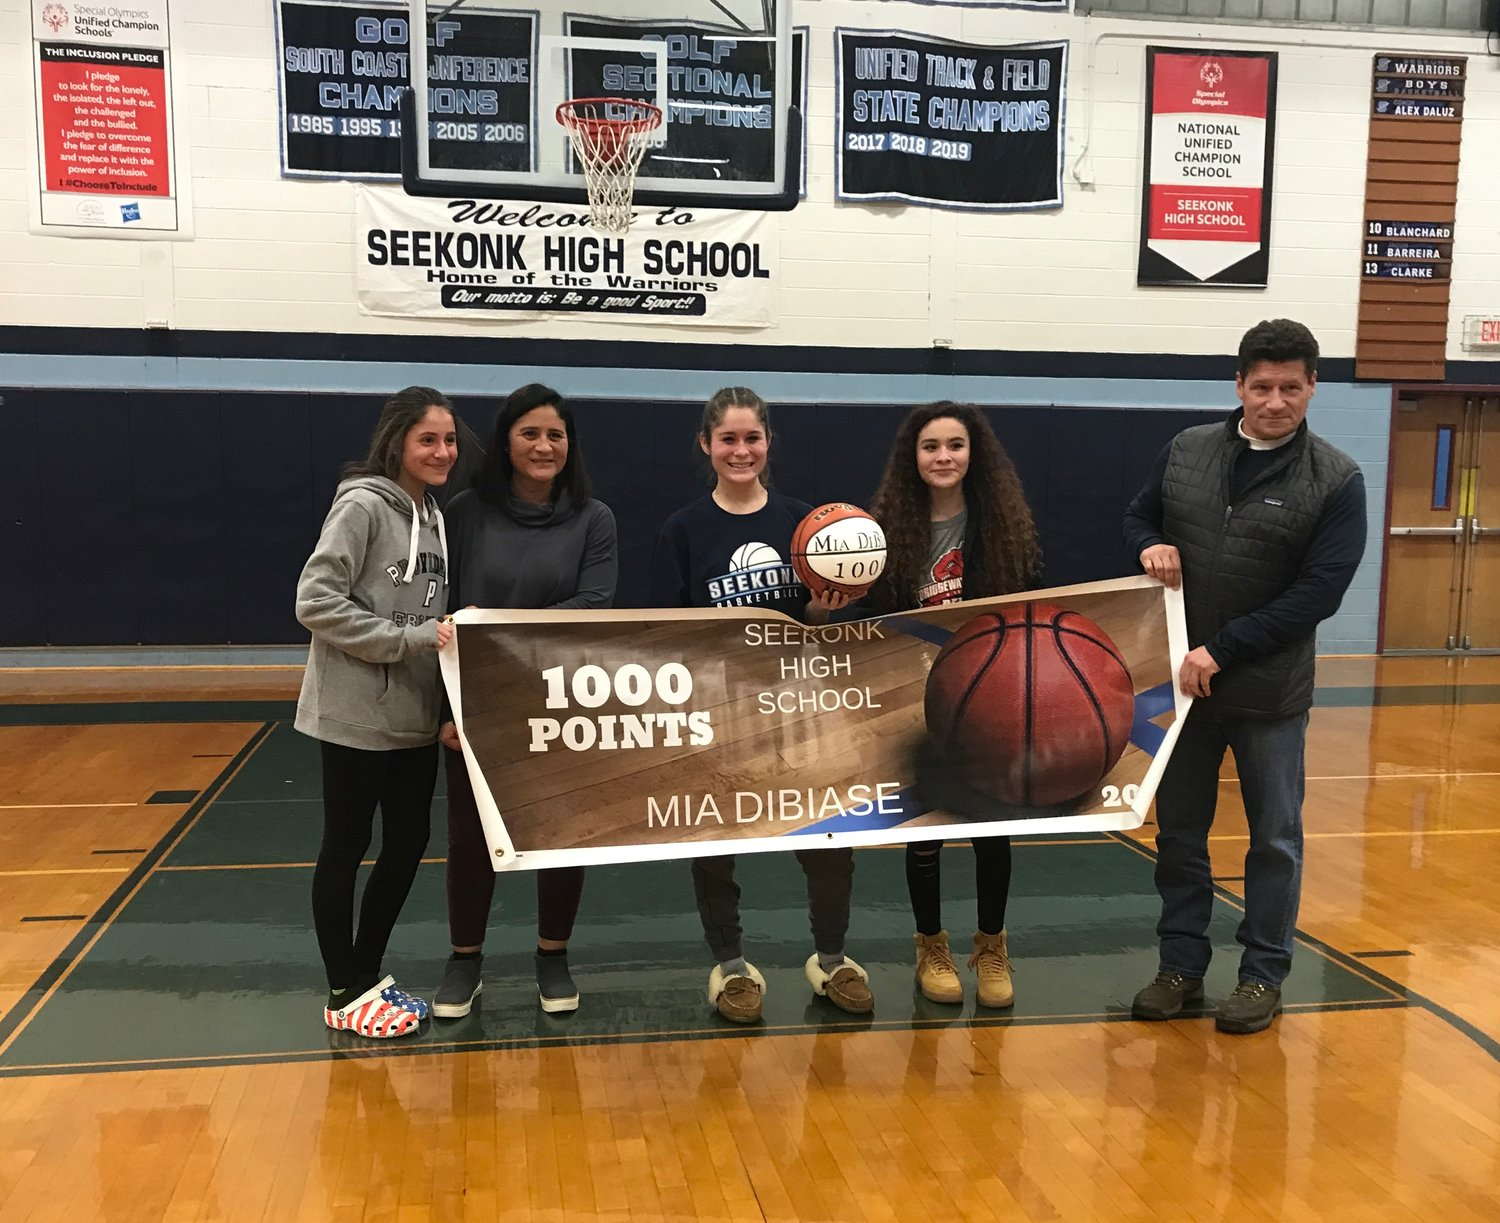 Seekonk senior Mia DiBiase celebrates with her family after the game in which she scored her 1,000th point.